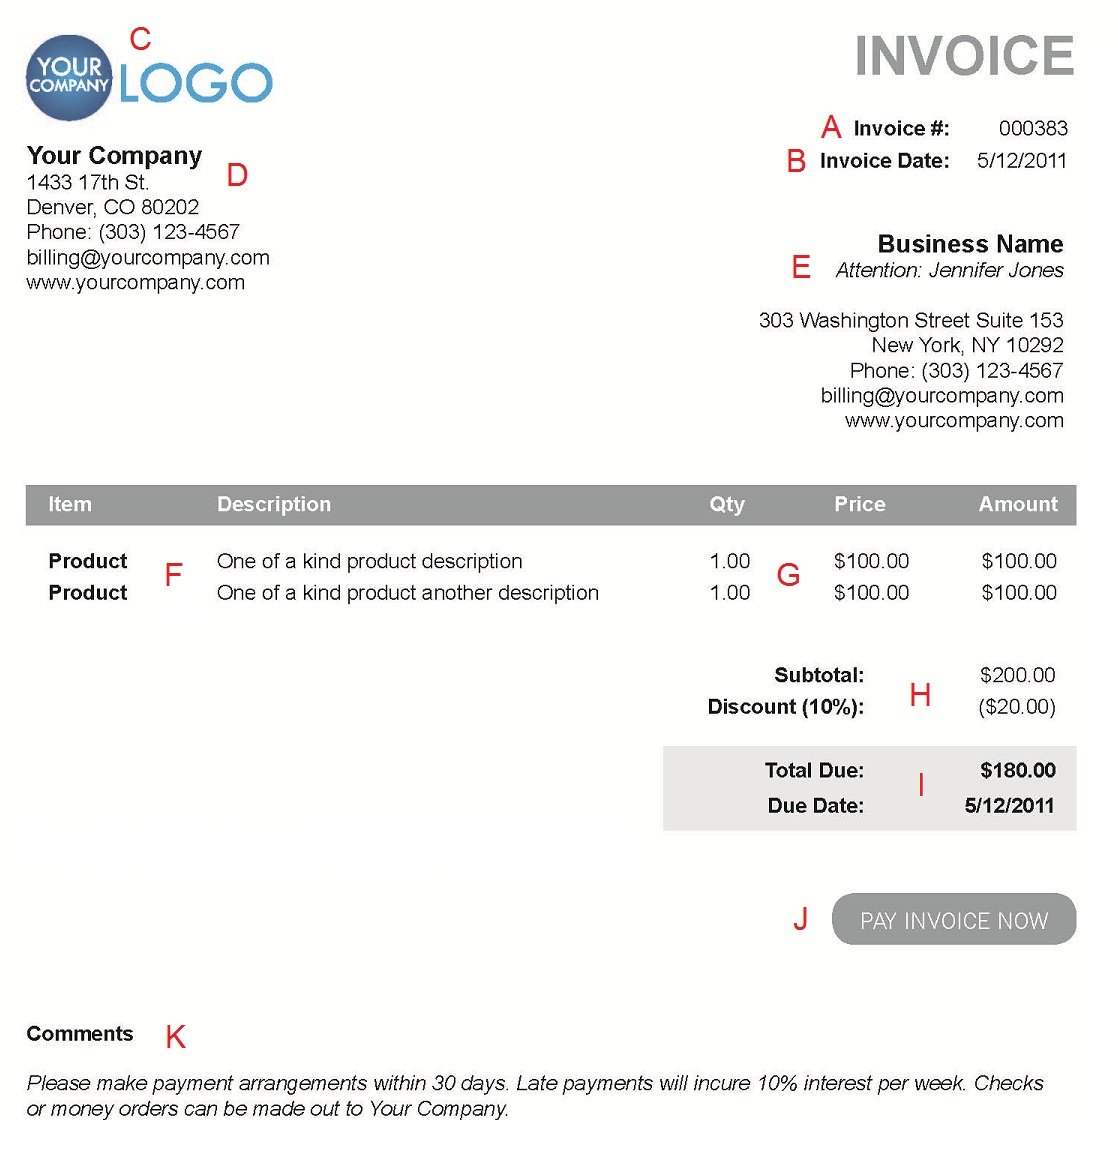 Coachoutletonlineplusus  Winning The  Different Sections Of An Electronic Payment Invoice With Lovely A  With Awesome Express Invoice Nch Also Mobile Invoicing Software In Addition Free Invoice Downloads And Cleaning Services Invoice As Well As Open Invoice Method Additionally Free Invoicing Program From Paysimplecom With Coachoutletonlineplusus  Lovely The  Different Sections Of An Electronic Payment Invoice With Awesome A  And Winning Express Invoice Nch Also Mobile Invoicing Software In Addition Free Invoice Downloads From Paysimplecom